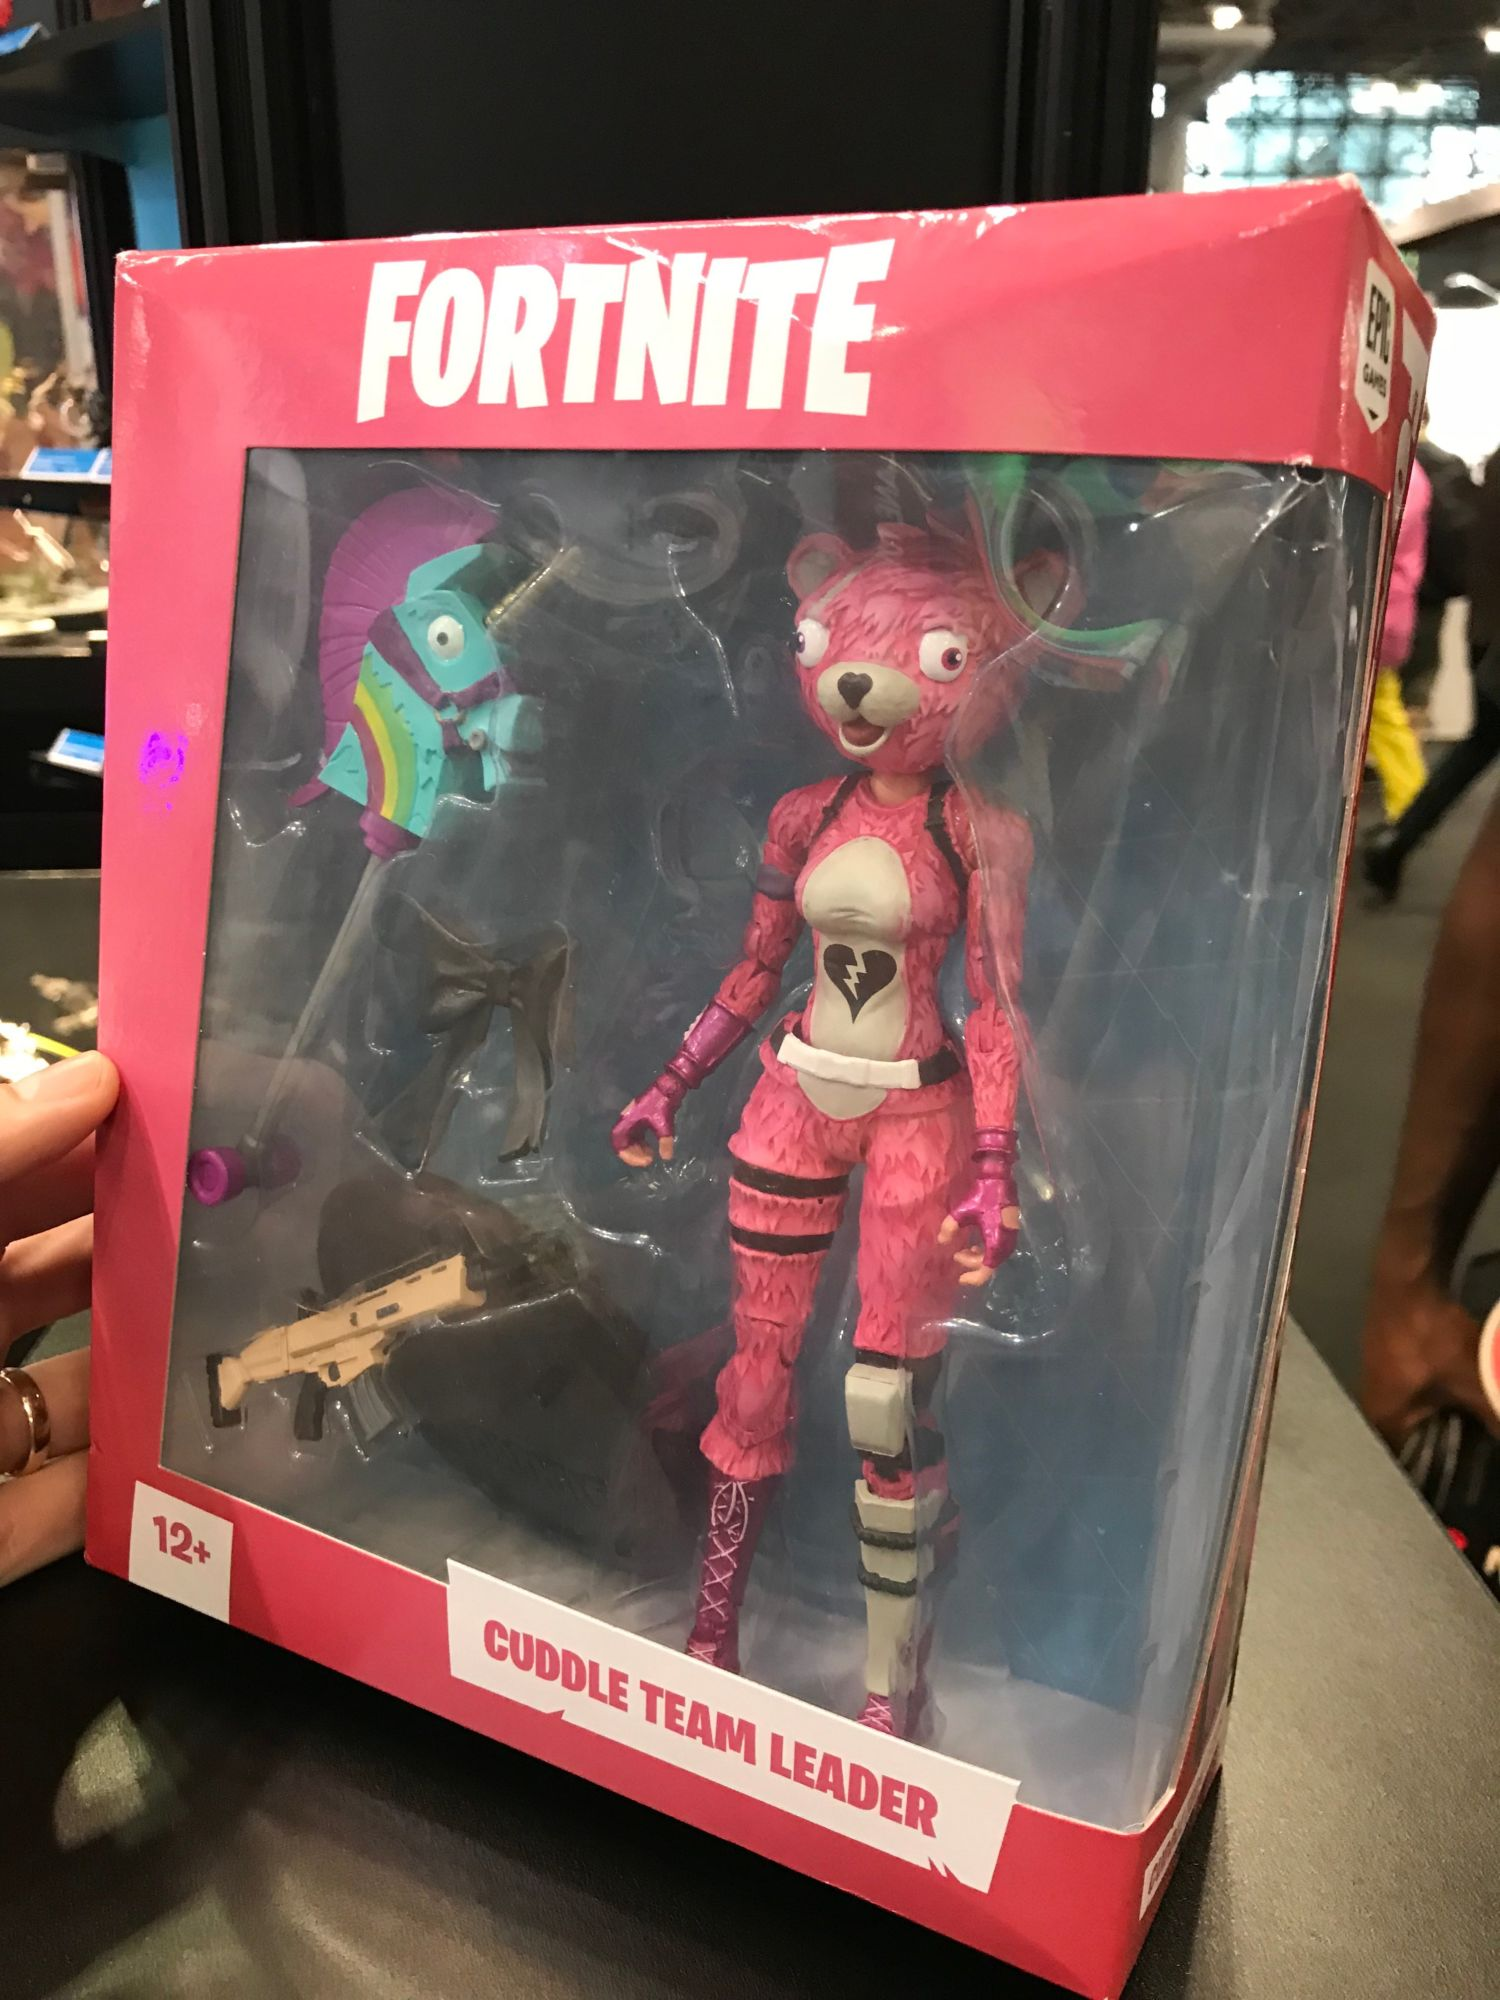 Mcfarlane Toys Debuts Fortnite Action Figures At Nycc